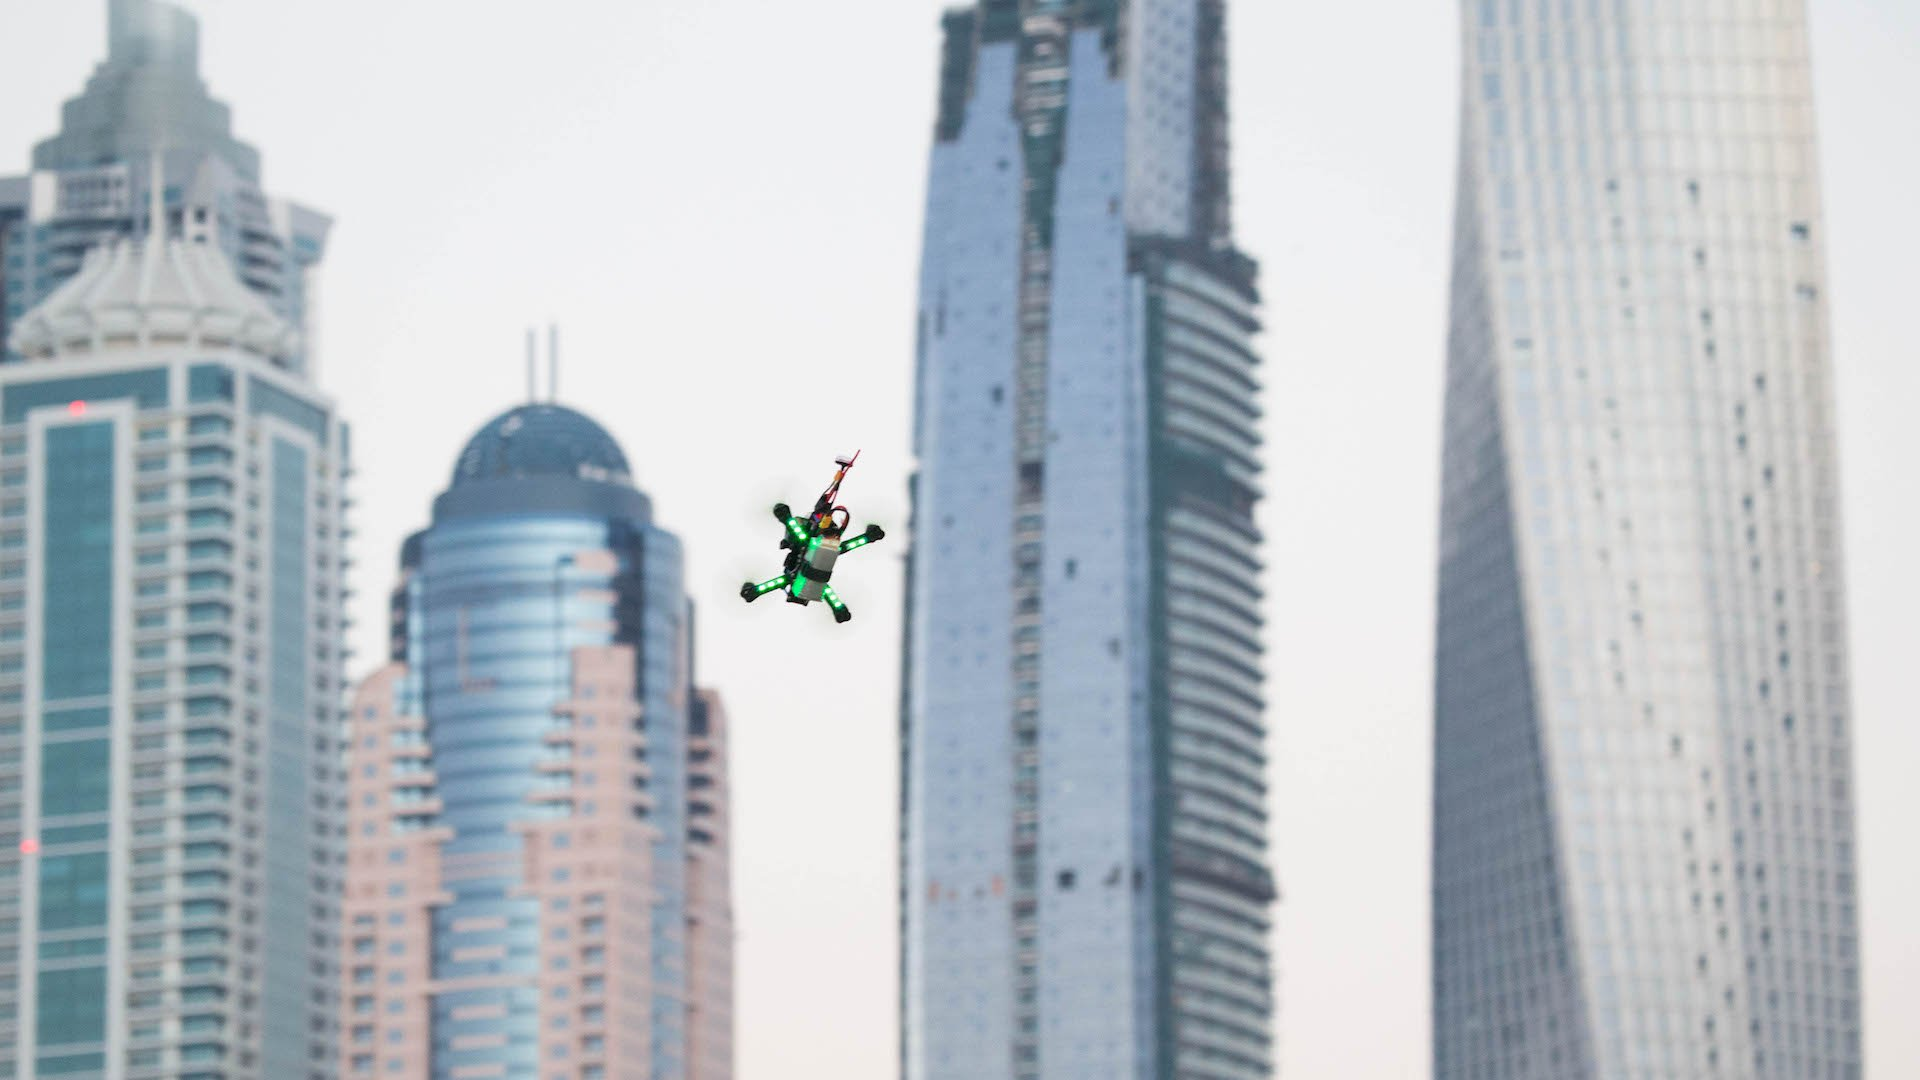 A drone flies around the track in front of the Dubai's Marina skyline during the World Drone Prix drone racing championship in Dubai, United Arab Emirates, on Saturday, March 12, 2016. Teams compete for the global champion purse of total prizes of $1 million by navigating drones at over 100kms an hour around a track which features multiple pathways, kinetic and static obstacles designed to push pilots to their limits. Photographer: Razan Alzayani/Bloomberg